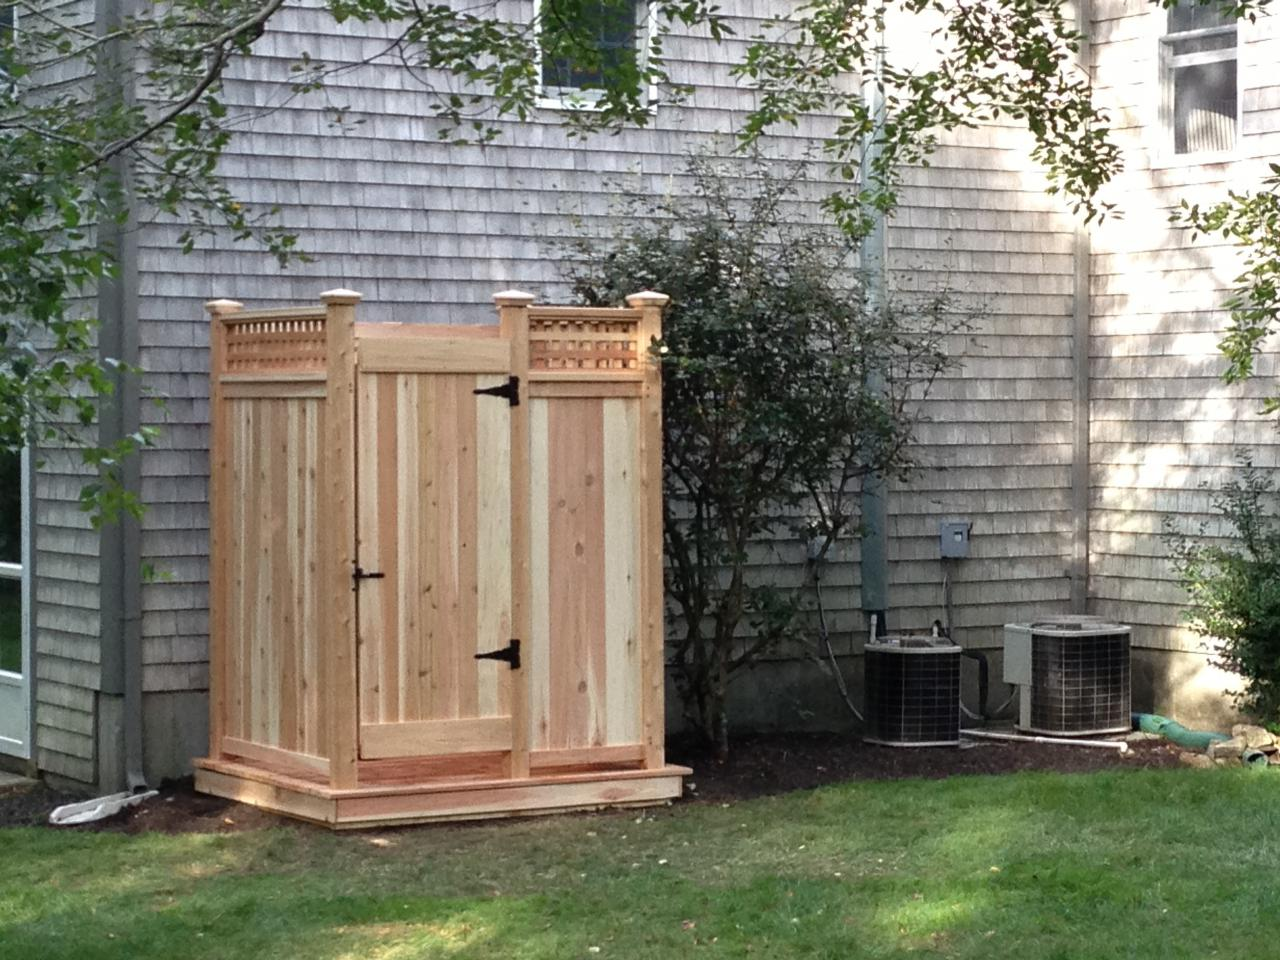 Cape Cod Outdoor Shower Company - Some of our work....